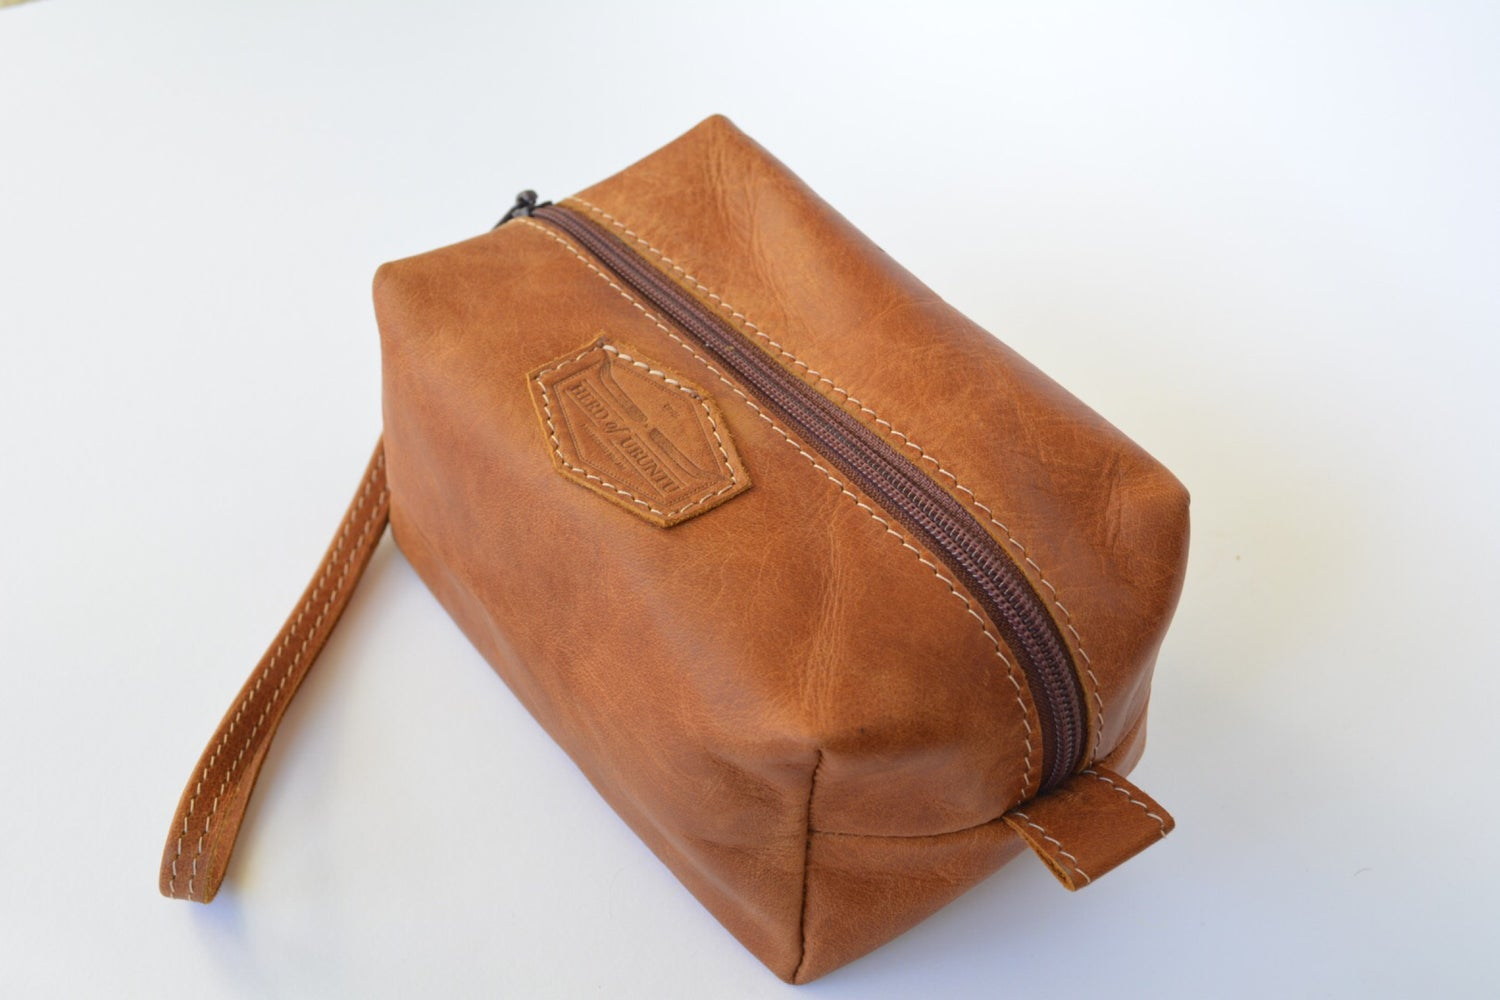 Image of The Finch Toiletry Bag